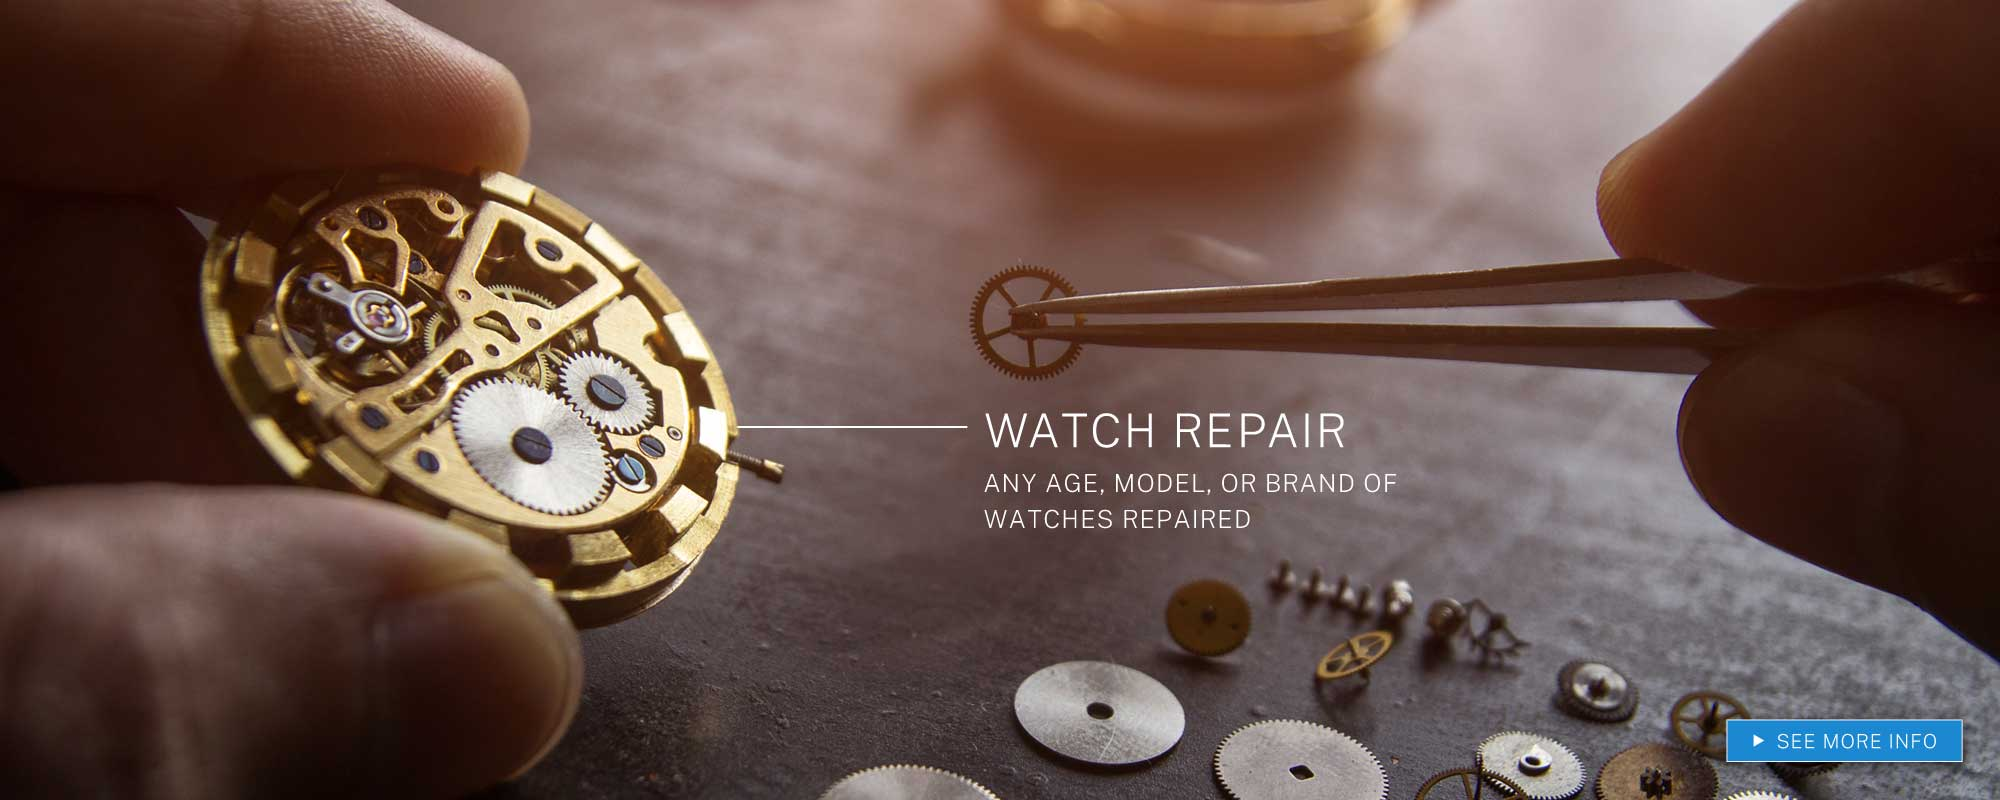 Watch Repair Service Available At Marks Jewelry Co. LLC